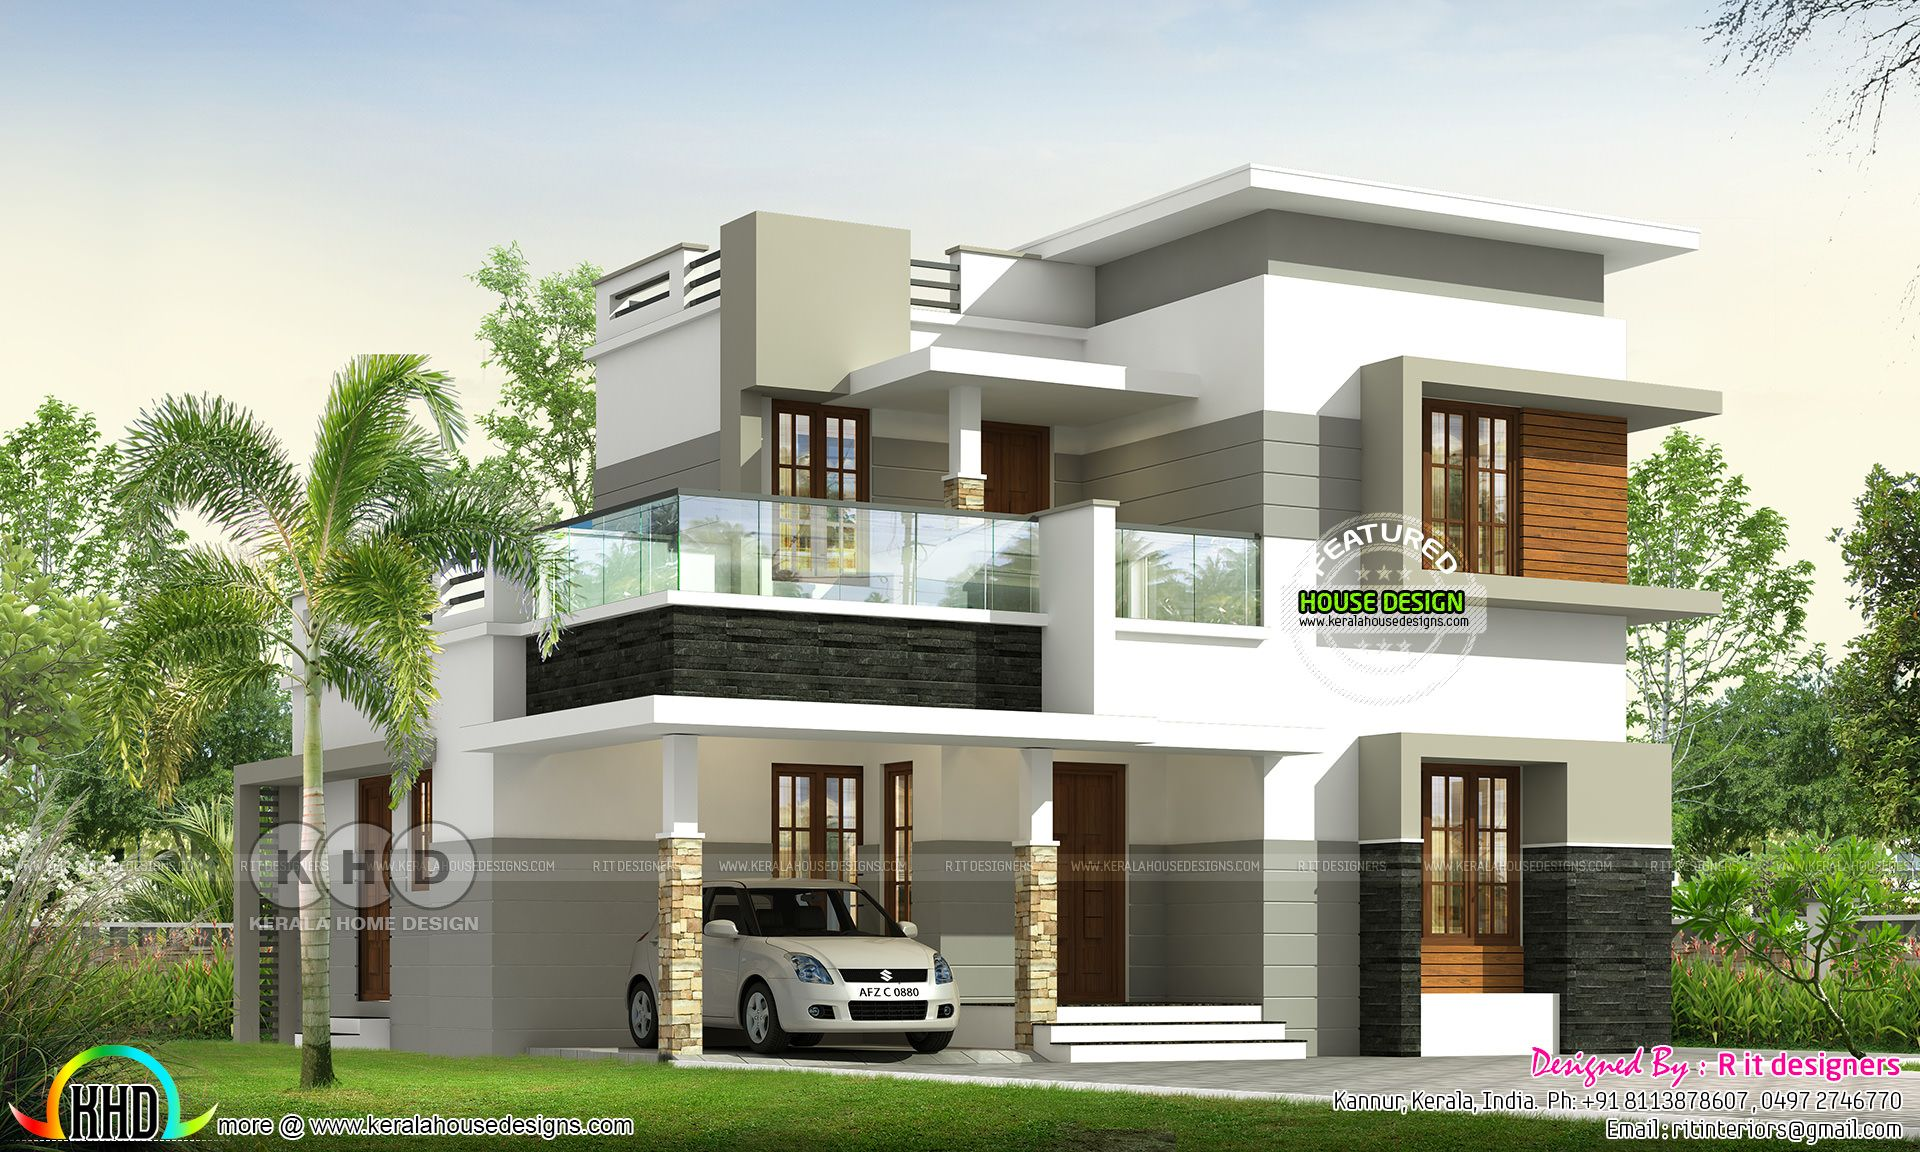 1549 Square Feet 4 Bedroom Contemporary House Plan Bungalow House Design House Front Design Contemporary House Plans